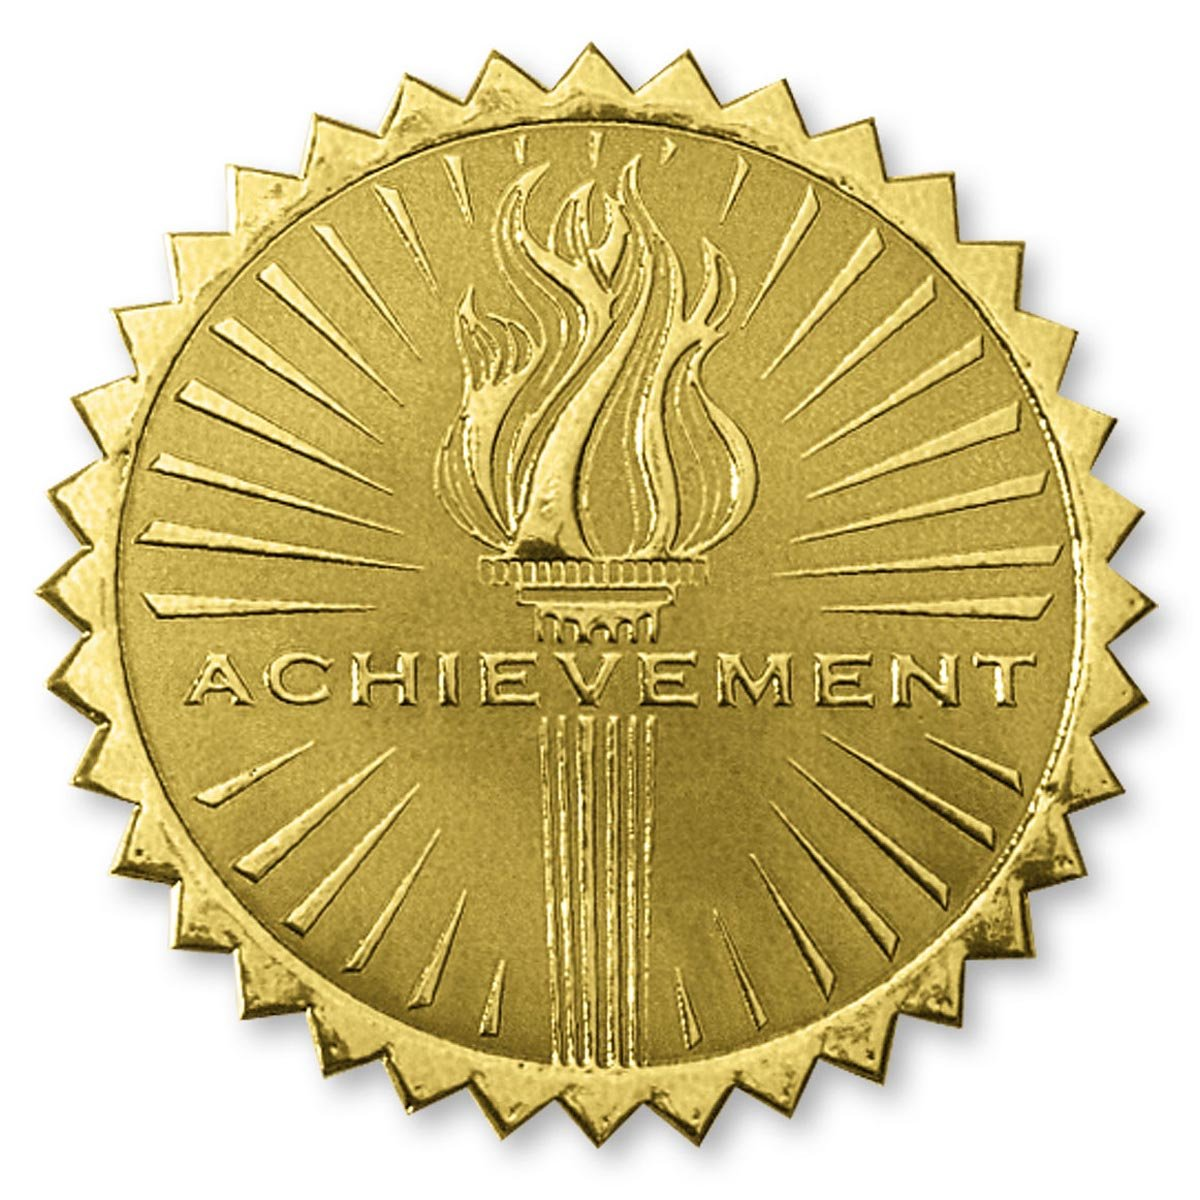 Deluxe Embossed Achievement Torch Gold Foil Certificate Seals, 2 Inch, Self Adhesive, 102 Count